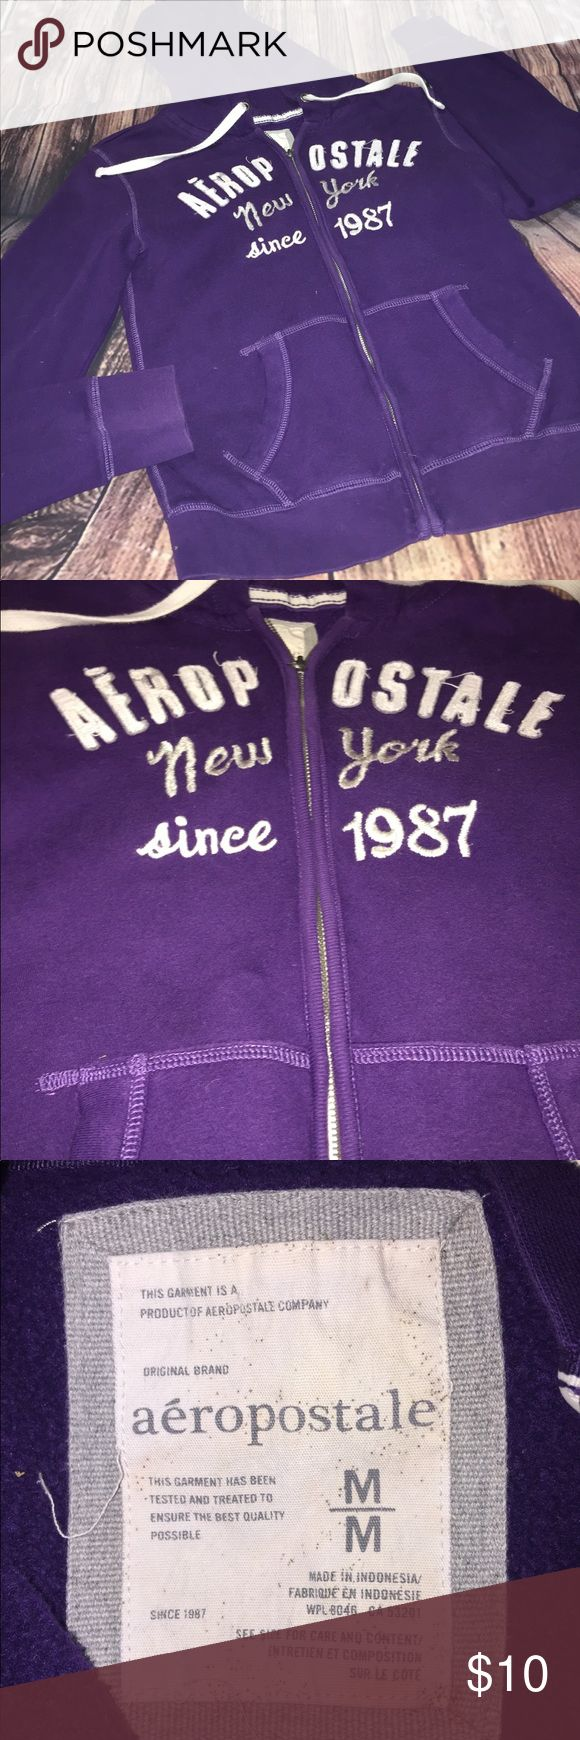 Aeropostale purple zip up hoodie size medium Aeropostale deep purple zip up hoodie size medium. 22 in long, 16 in wide, 23 in sleeves.   I am open to reasonable offers, I ship within 48 hours of purchase, most of the time sooner. I also offer a 15% bundle discount with 3 or more items and will also send you an additional discounted offer if you create a bundle. Items $10 and under are priced firm unless bundled. I am a non smoking household. Happy poshing! 👗👠👜💄 Aeropostale Tops…